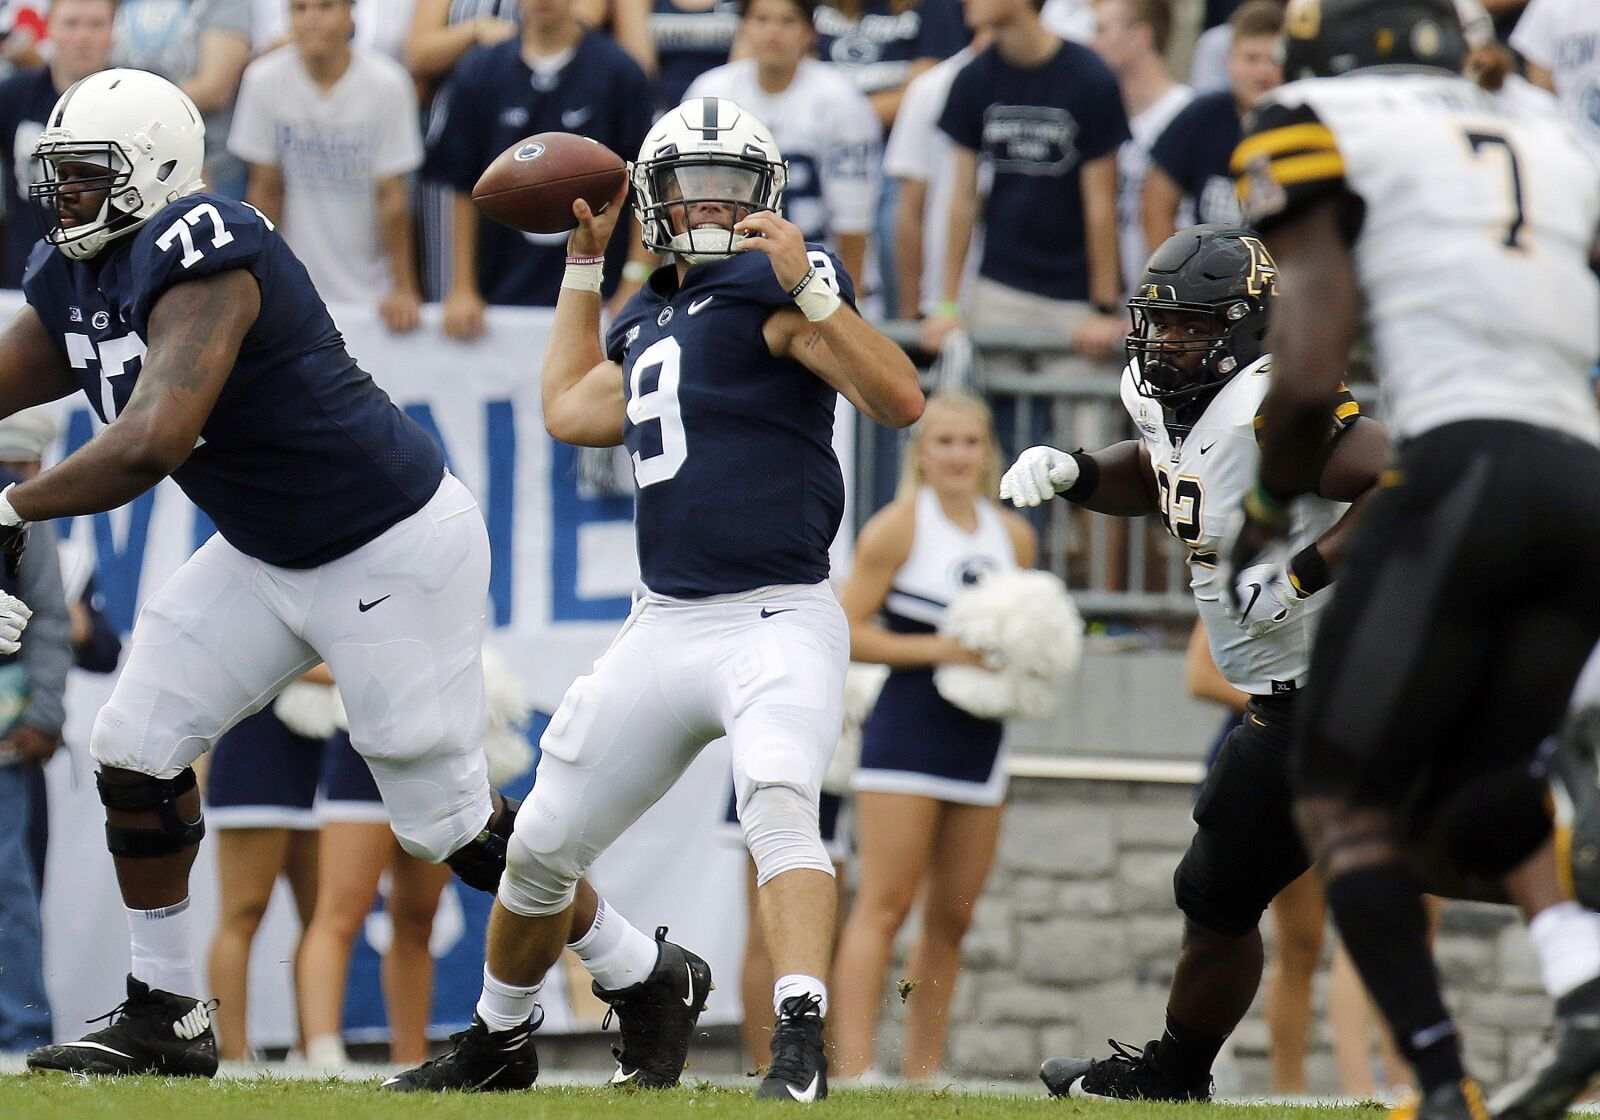 Penn State Football: Trace McSorley will make statement with win No. 30